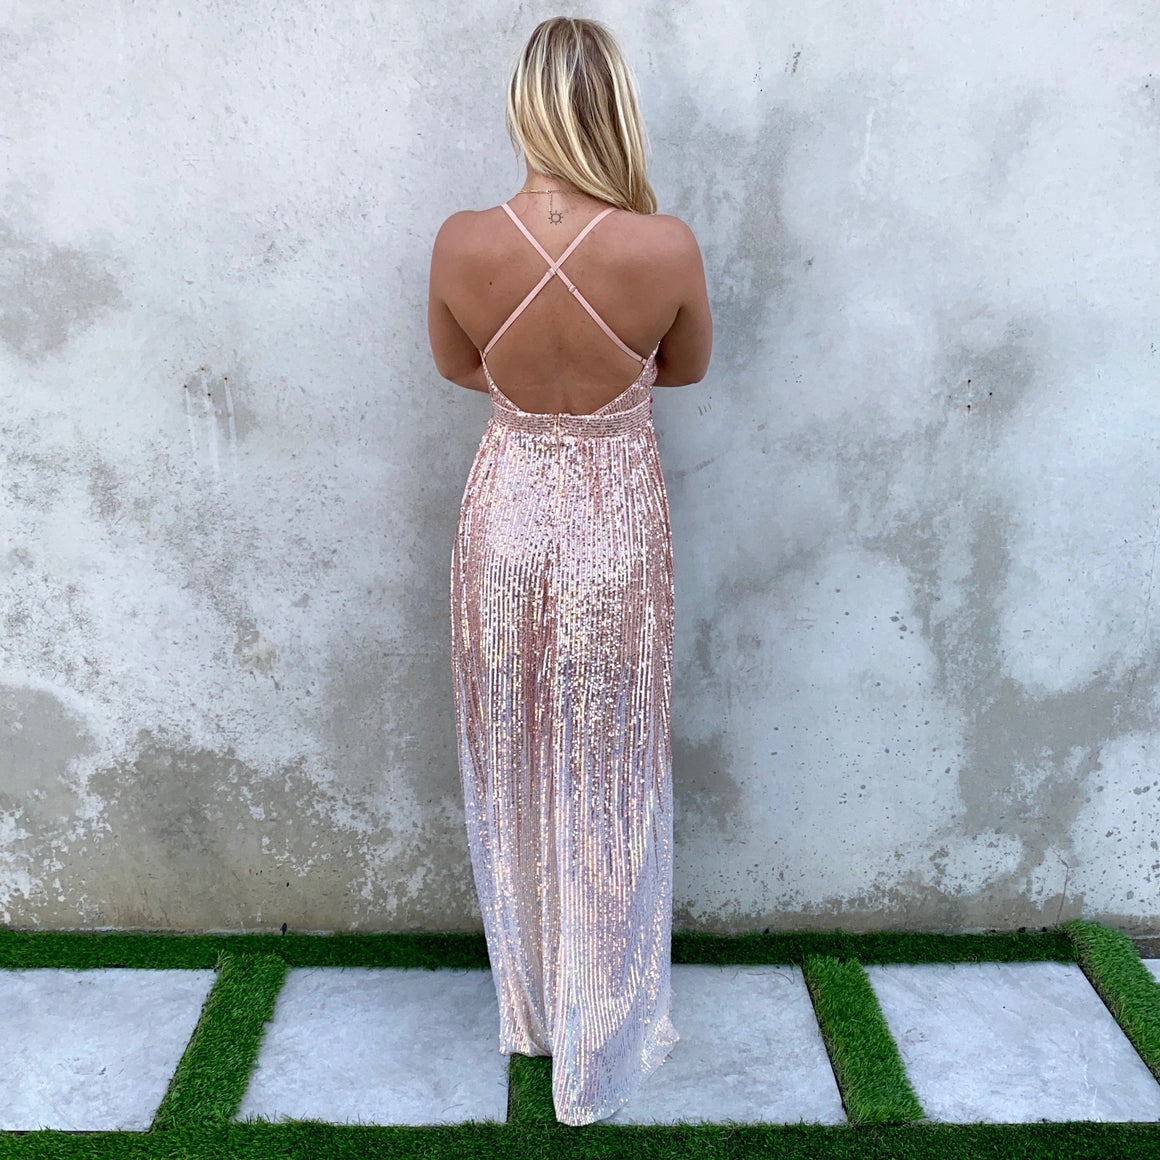 Light Up The Night Rose Gold Ombre Sequin Maxi Dress - Dainty Hooligan